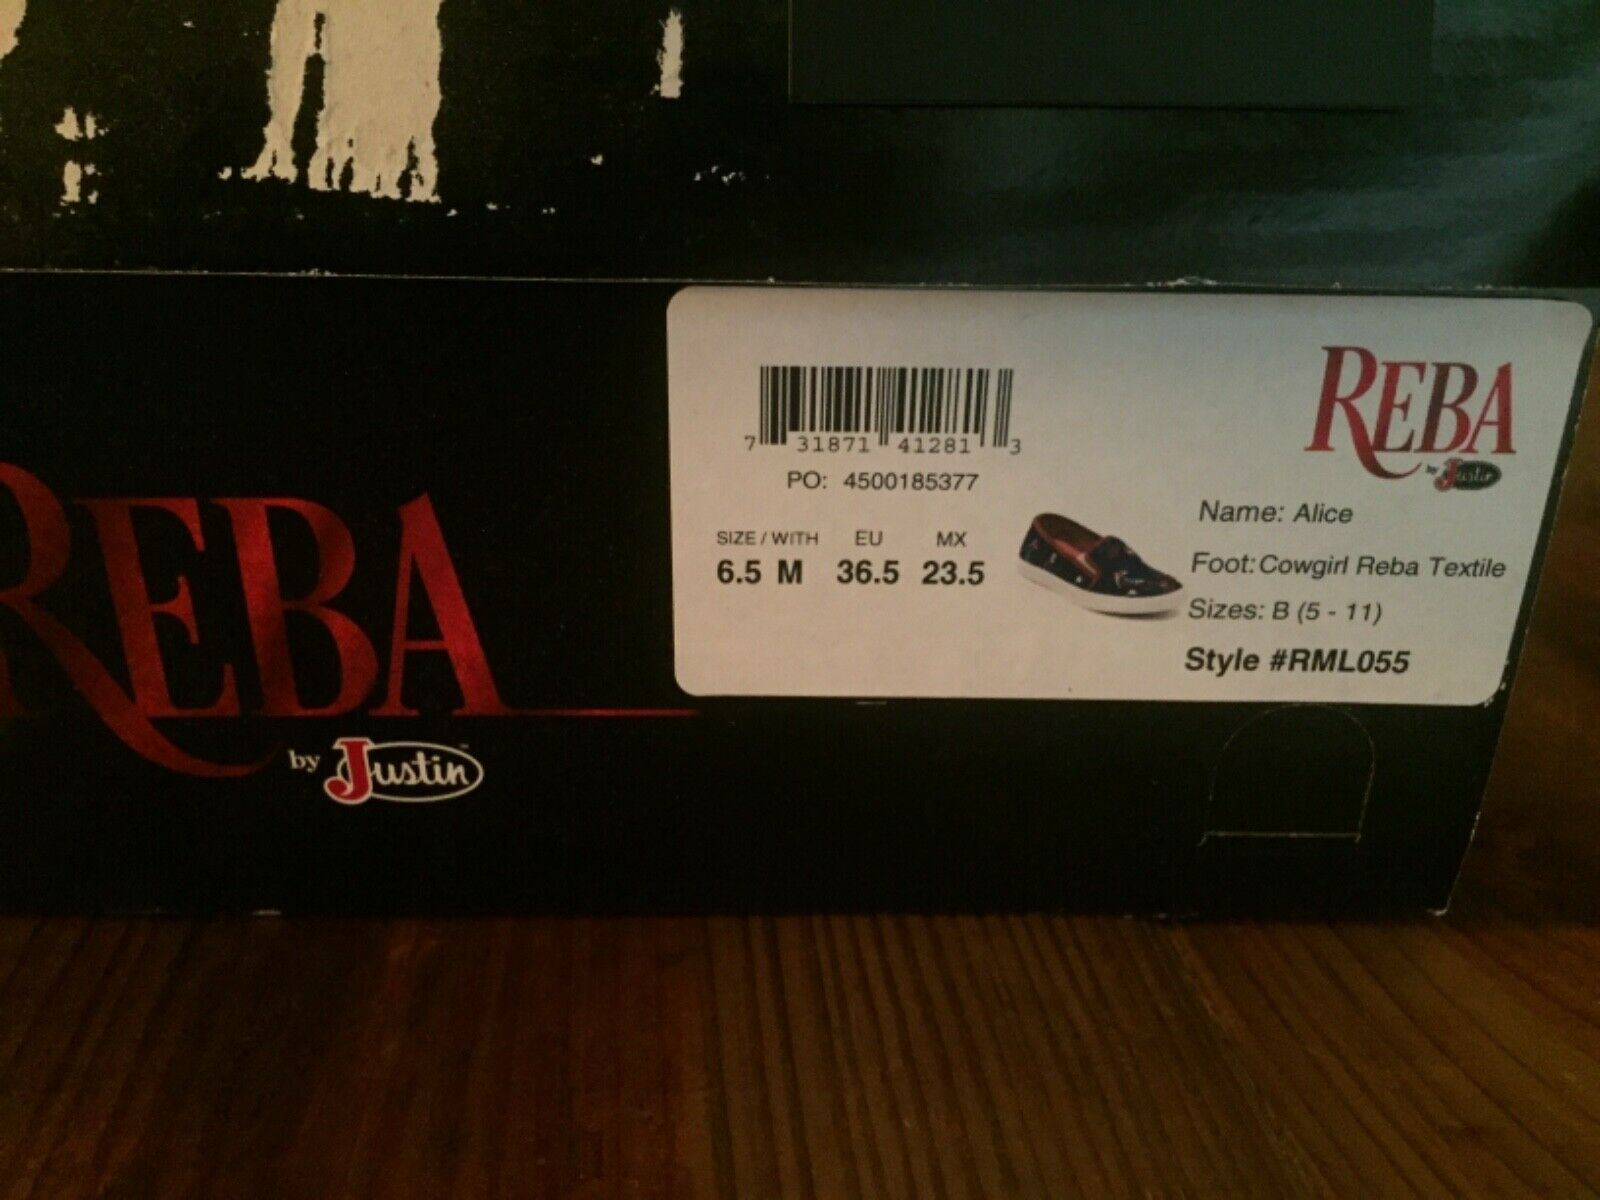 """Fashion womens casual  sport  shoes. Reba by Justin """"Alice"""" style shoes in a 6.5"""